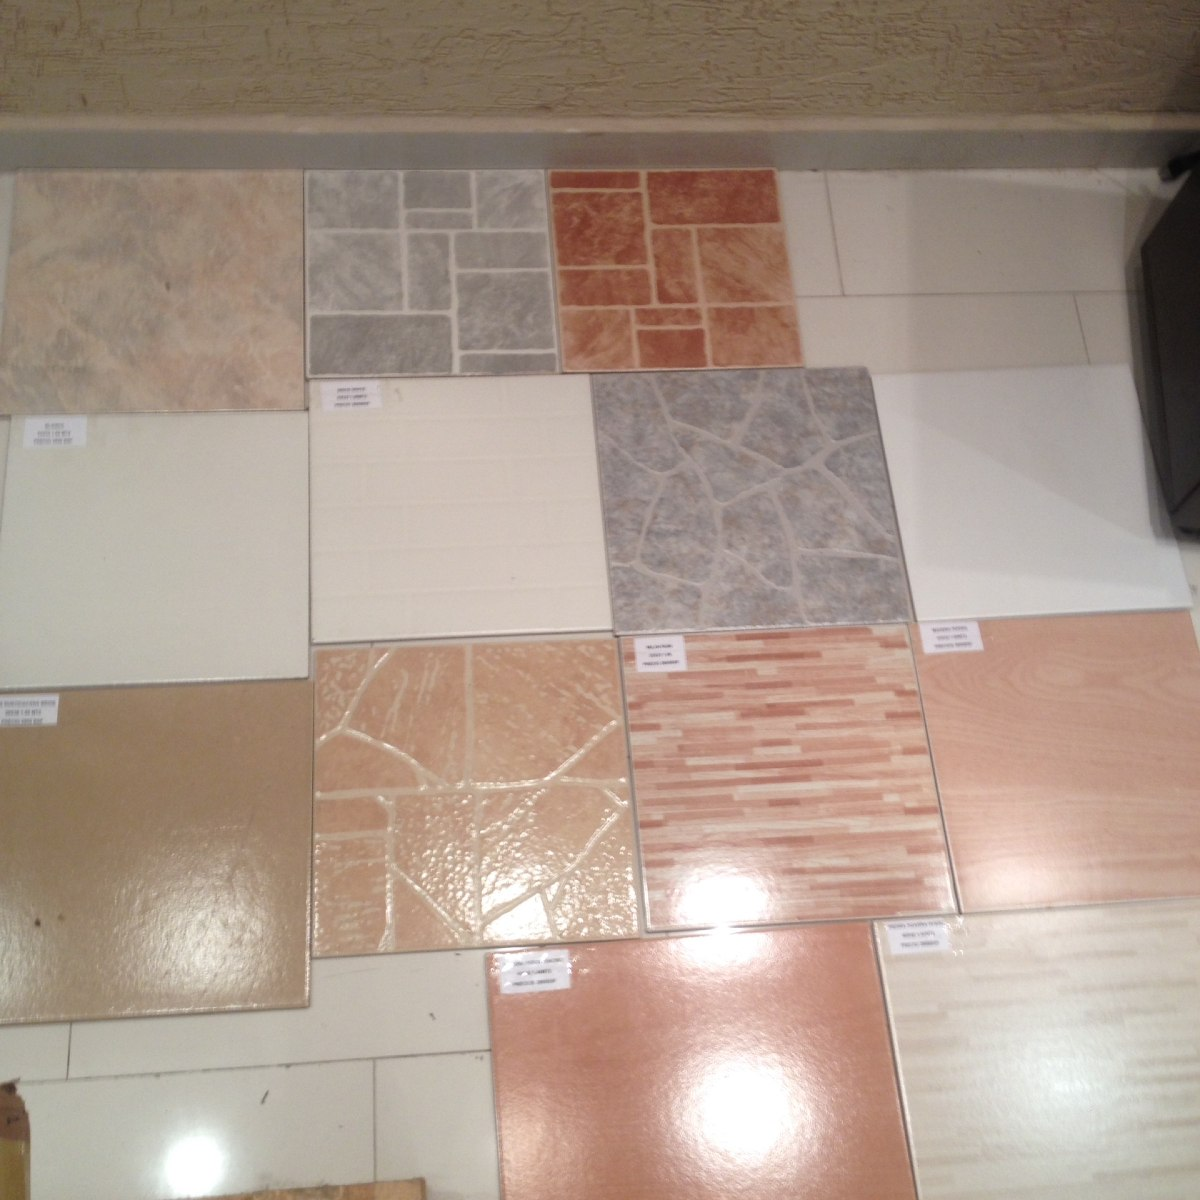 Cer mica para pared o piso de 33x33 bs en for Ceramica para pared